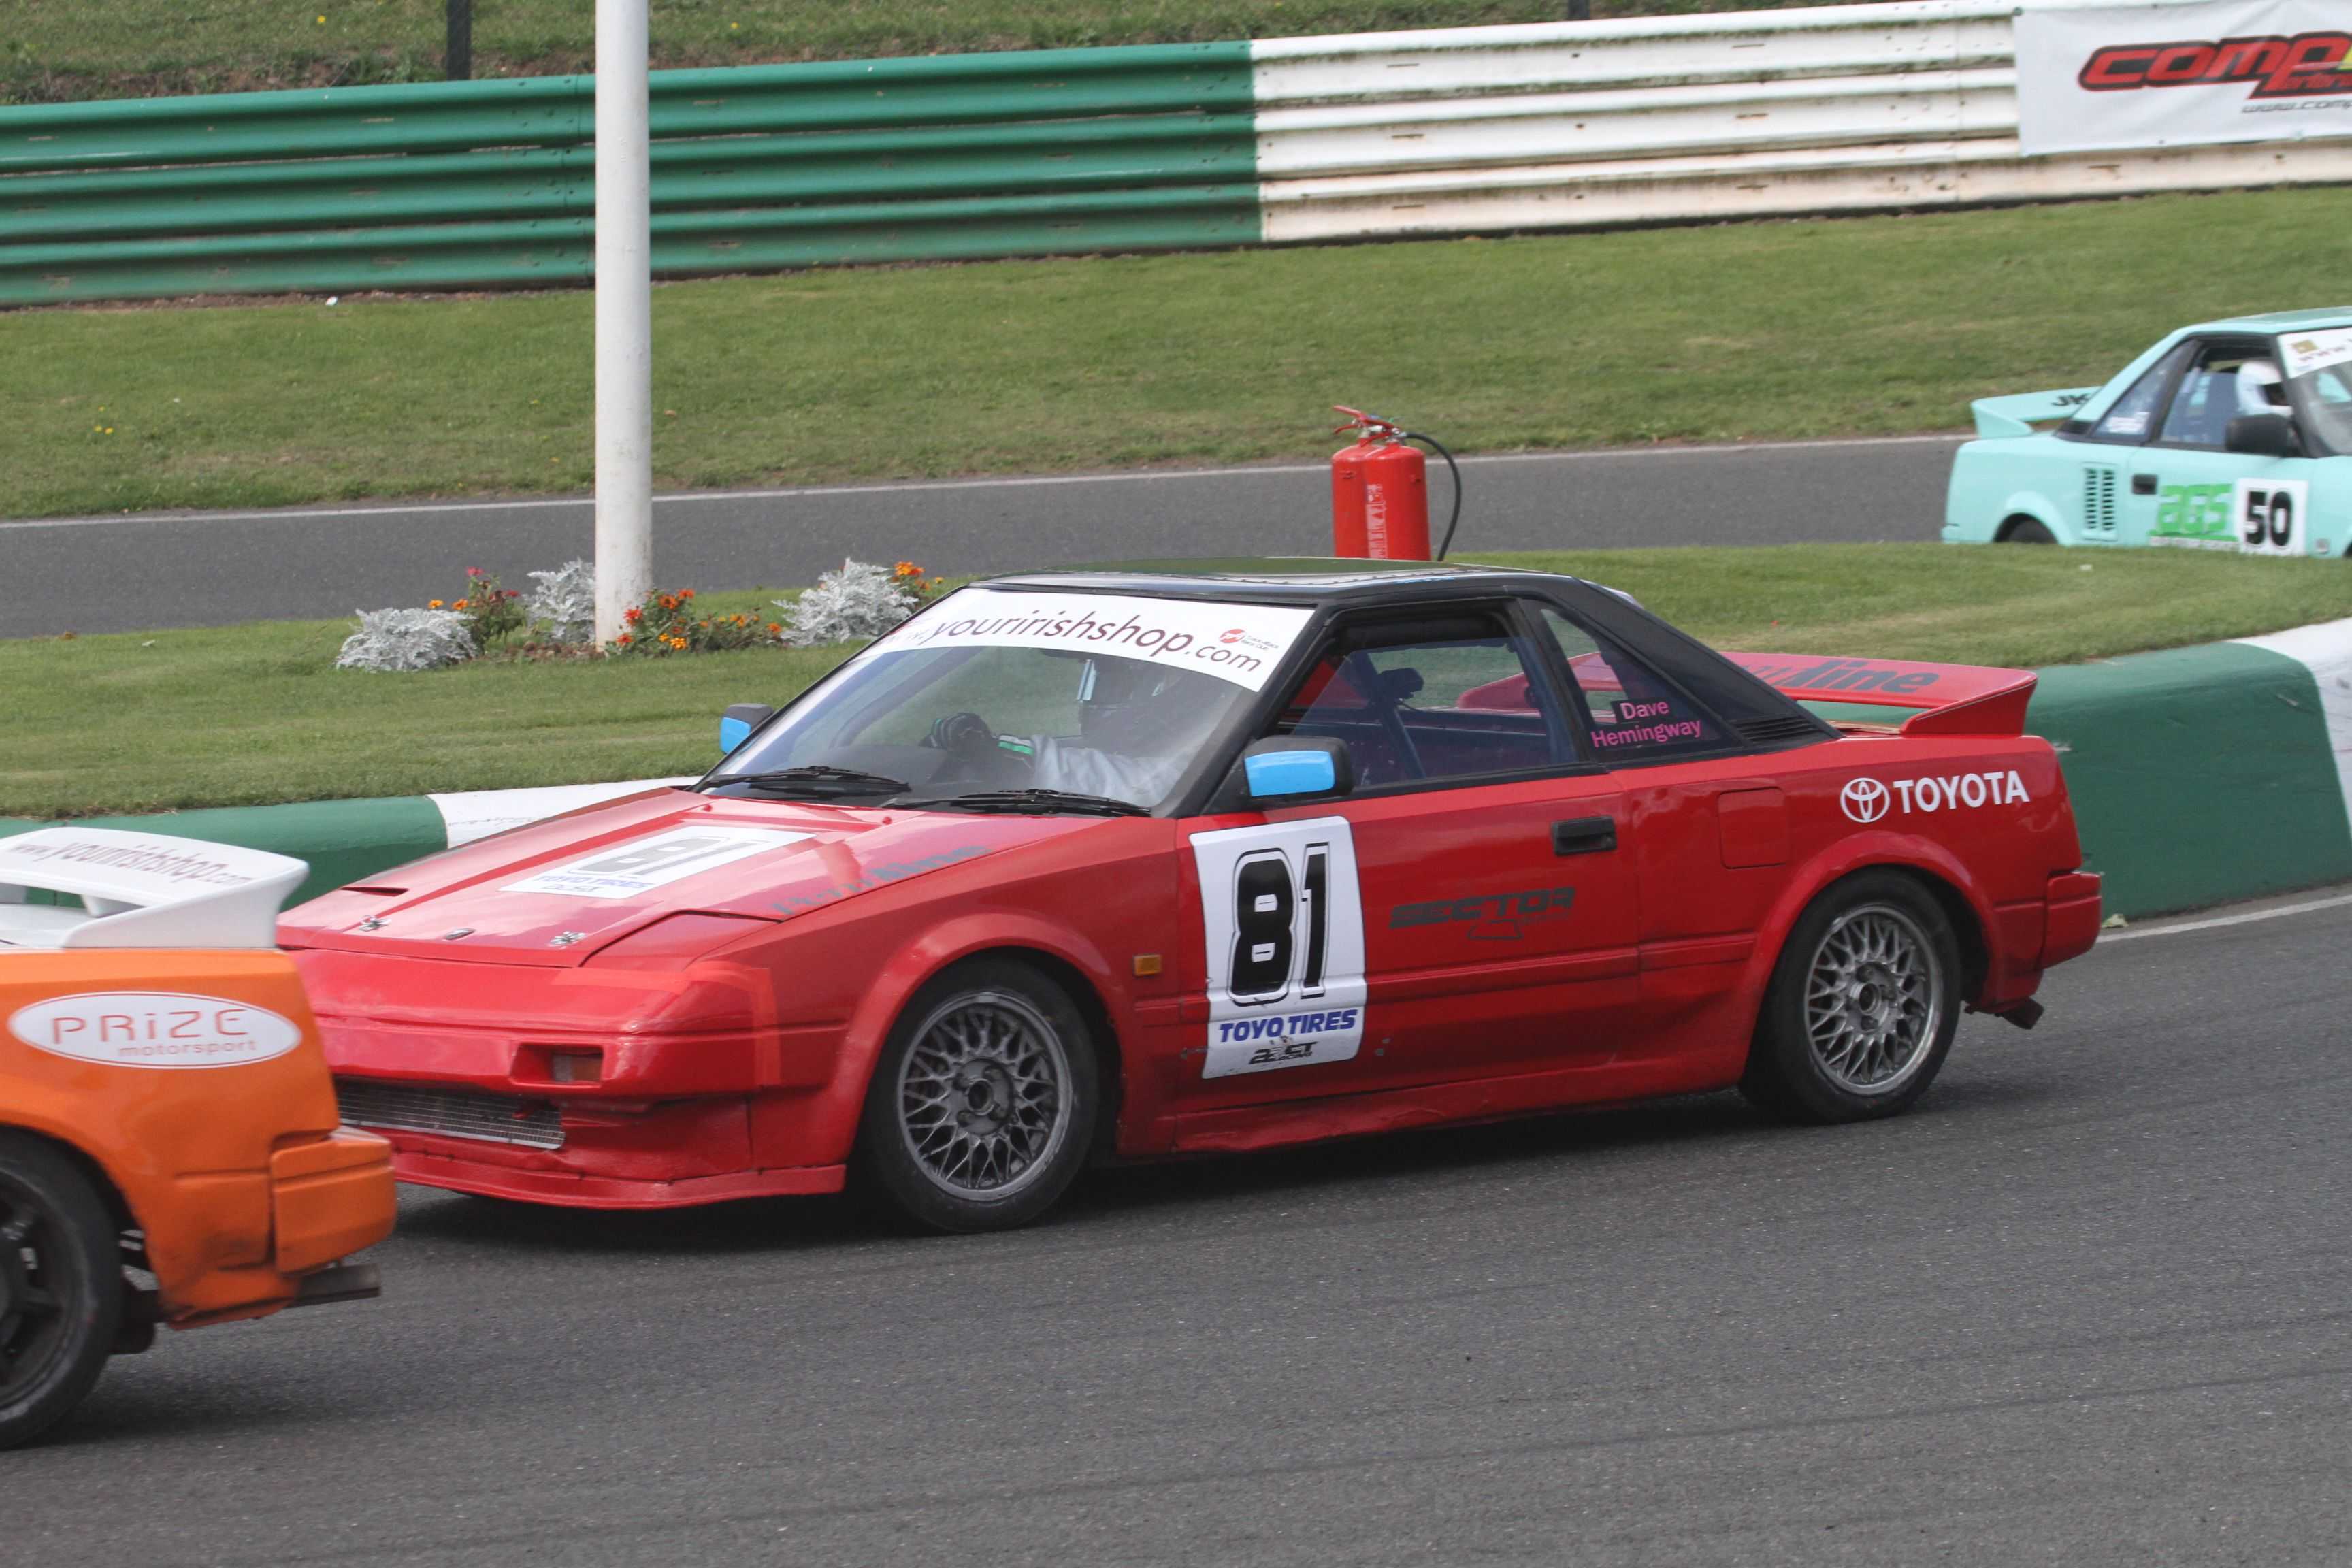 2016 Mallory MR2 Race 1 153_zps6ebtib3a